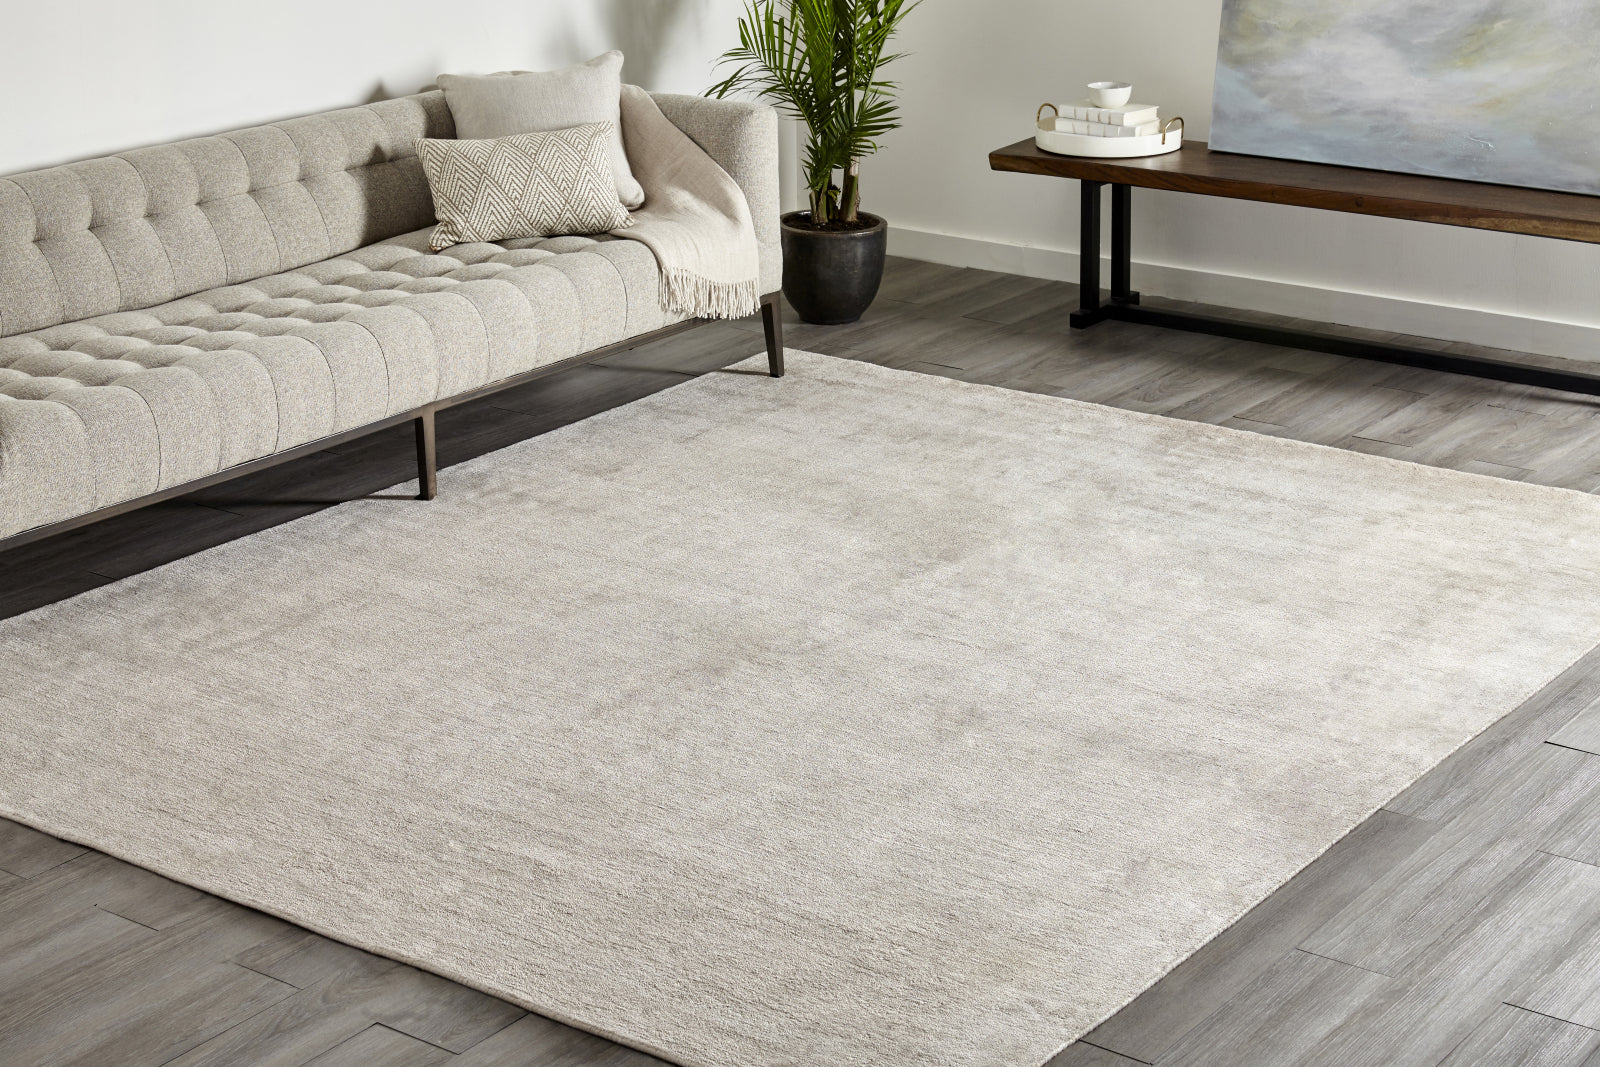 Solo Rugs Lodhi S1106 Champagne Area Rug main image